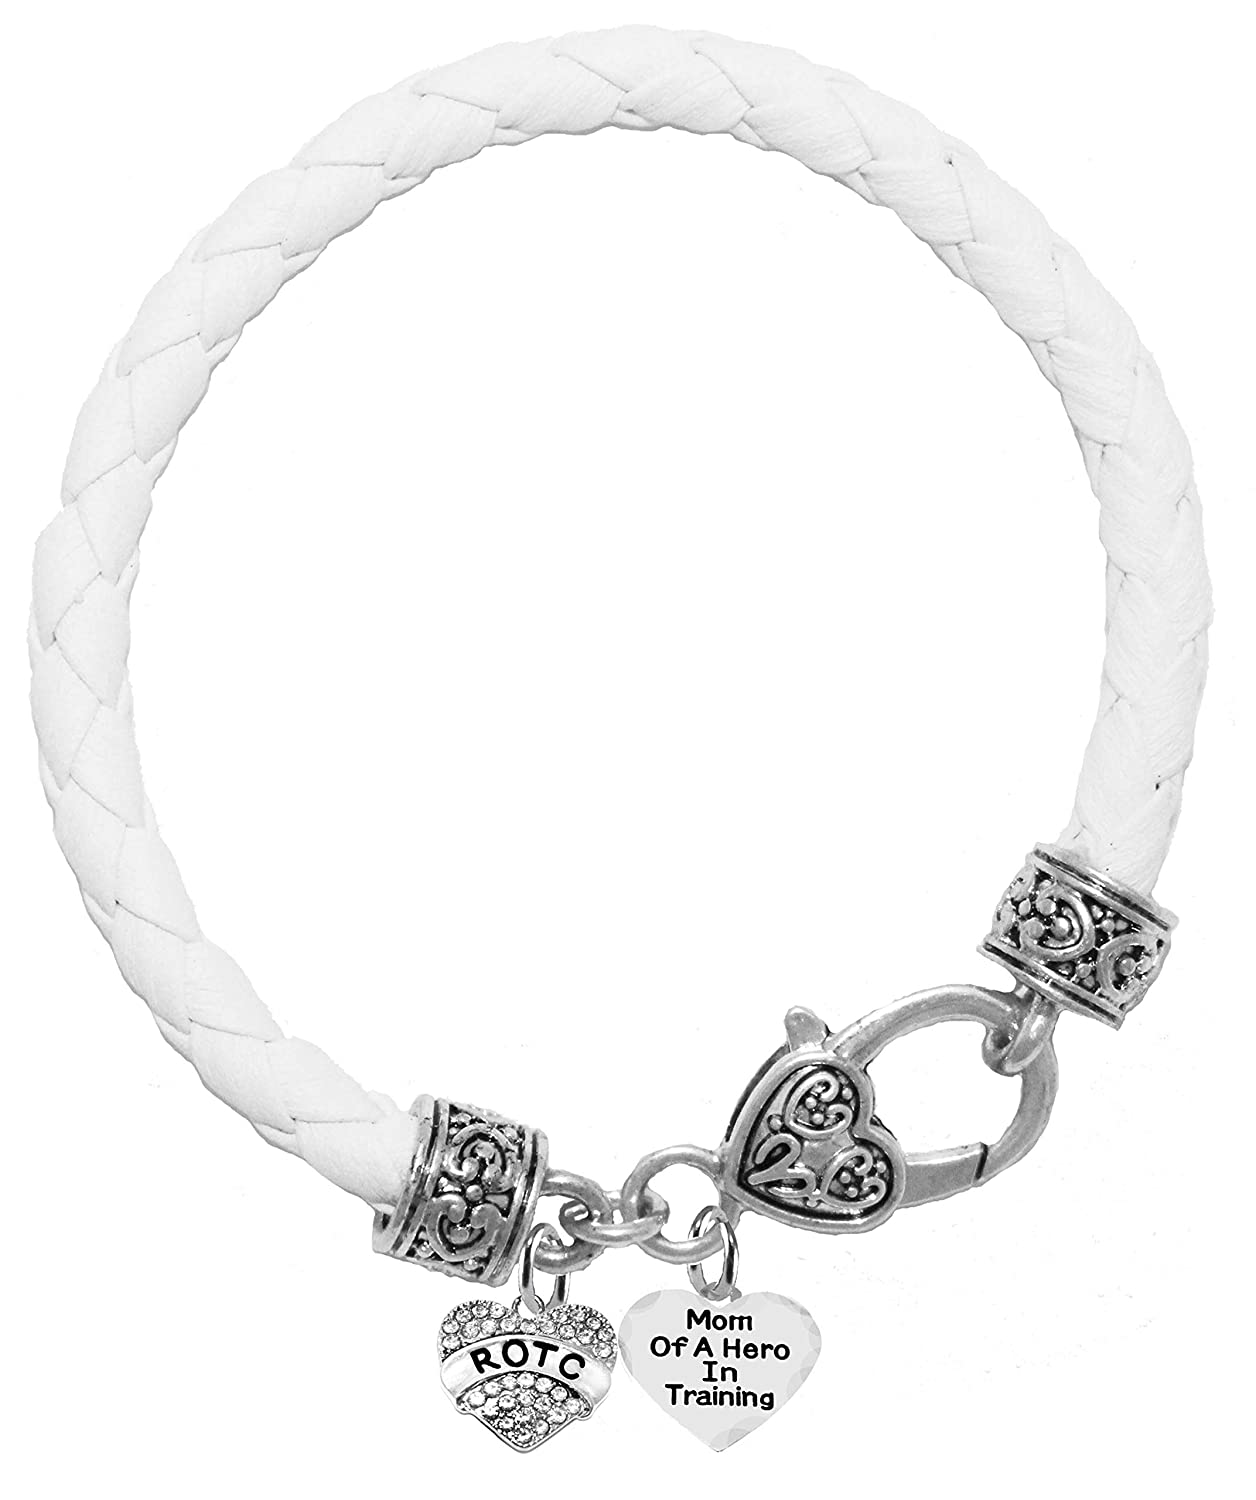 Lead and Cadmium Free Mom of A Hero in Training,Genuine White Leather Bracelet Cardinali Jewelry ROTC Hypoallergenic Safe-Nickel